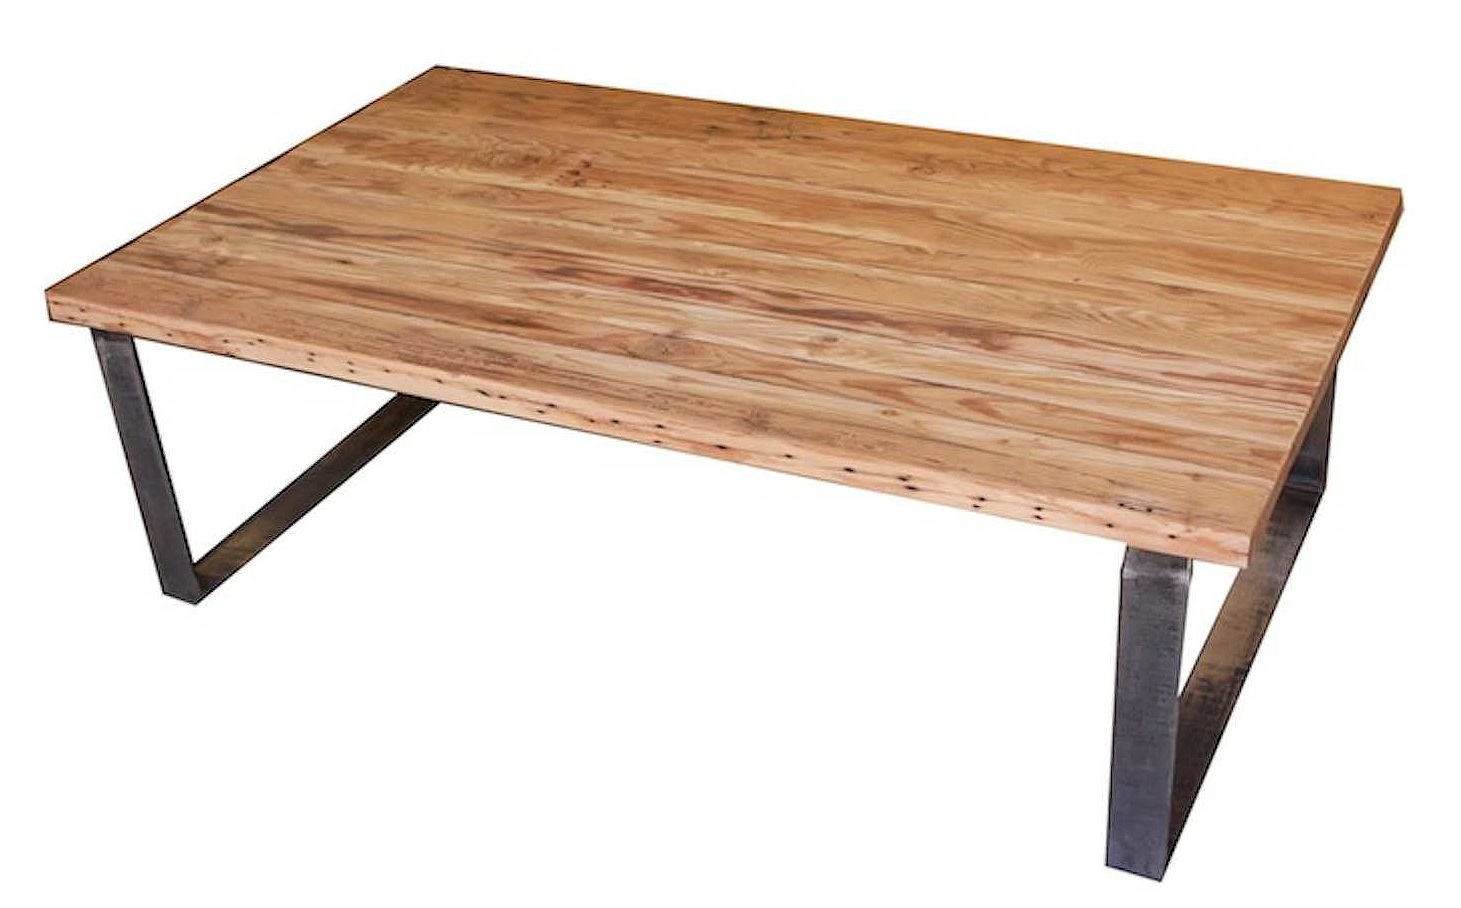 images about renmatix table inspiration on pinterest reclaimed wood tables hairpin table legs and legs cheap reclaimed wood furniture